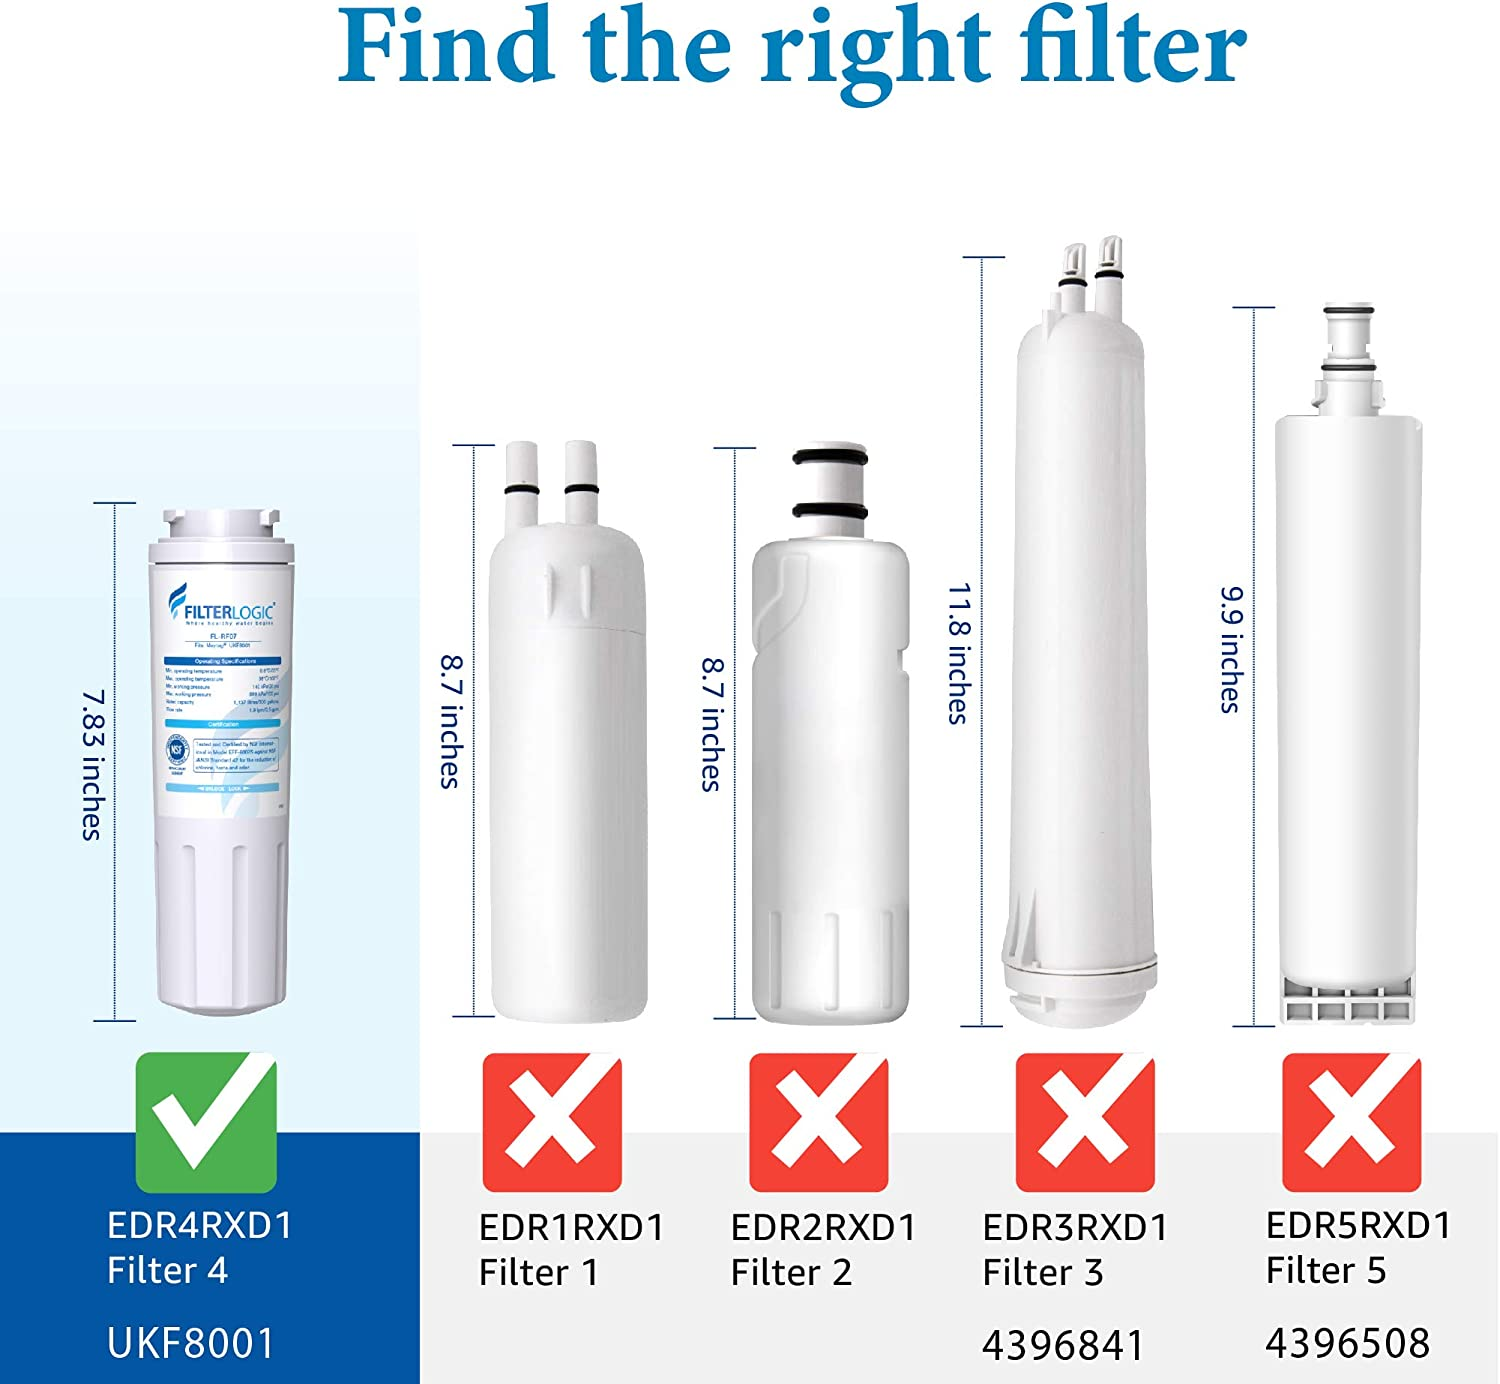 Filterlogic UKF8001 Water Filter, Replacement for Maytag UKF8001P, UKF8001AXX, Whirlpool 4396395, 469006, EDR4RXD1, EveryDrop Filter 4, PUR, Puriclean II, package may vary(Pack of 3): Home Improvement